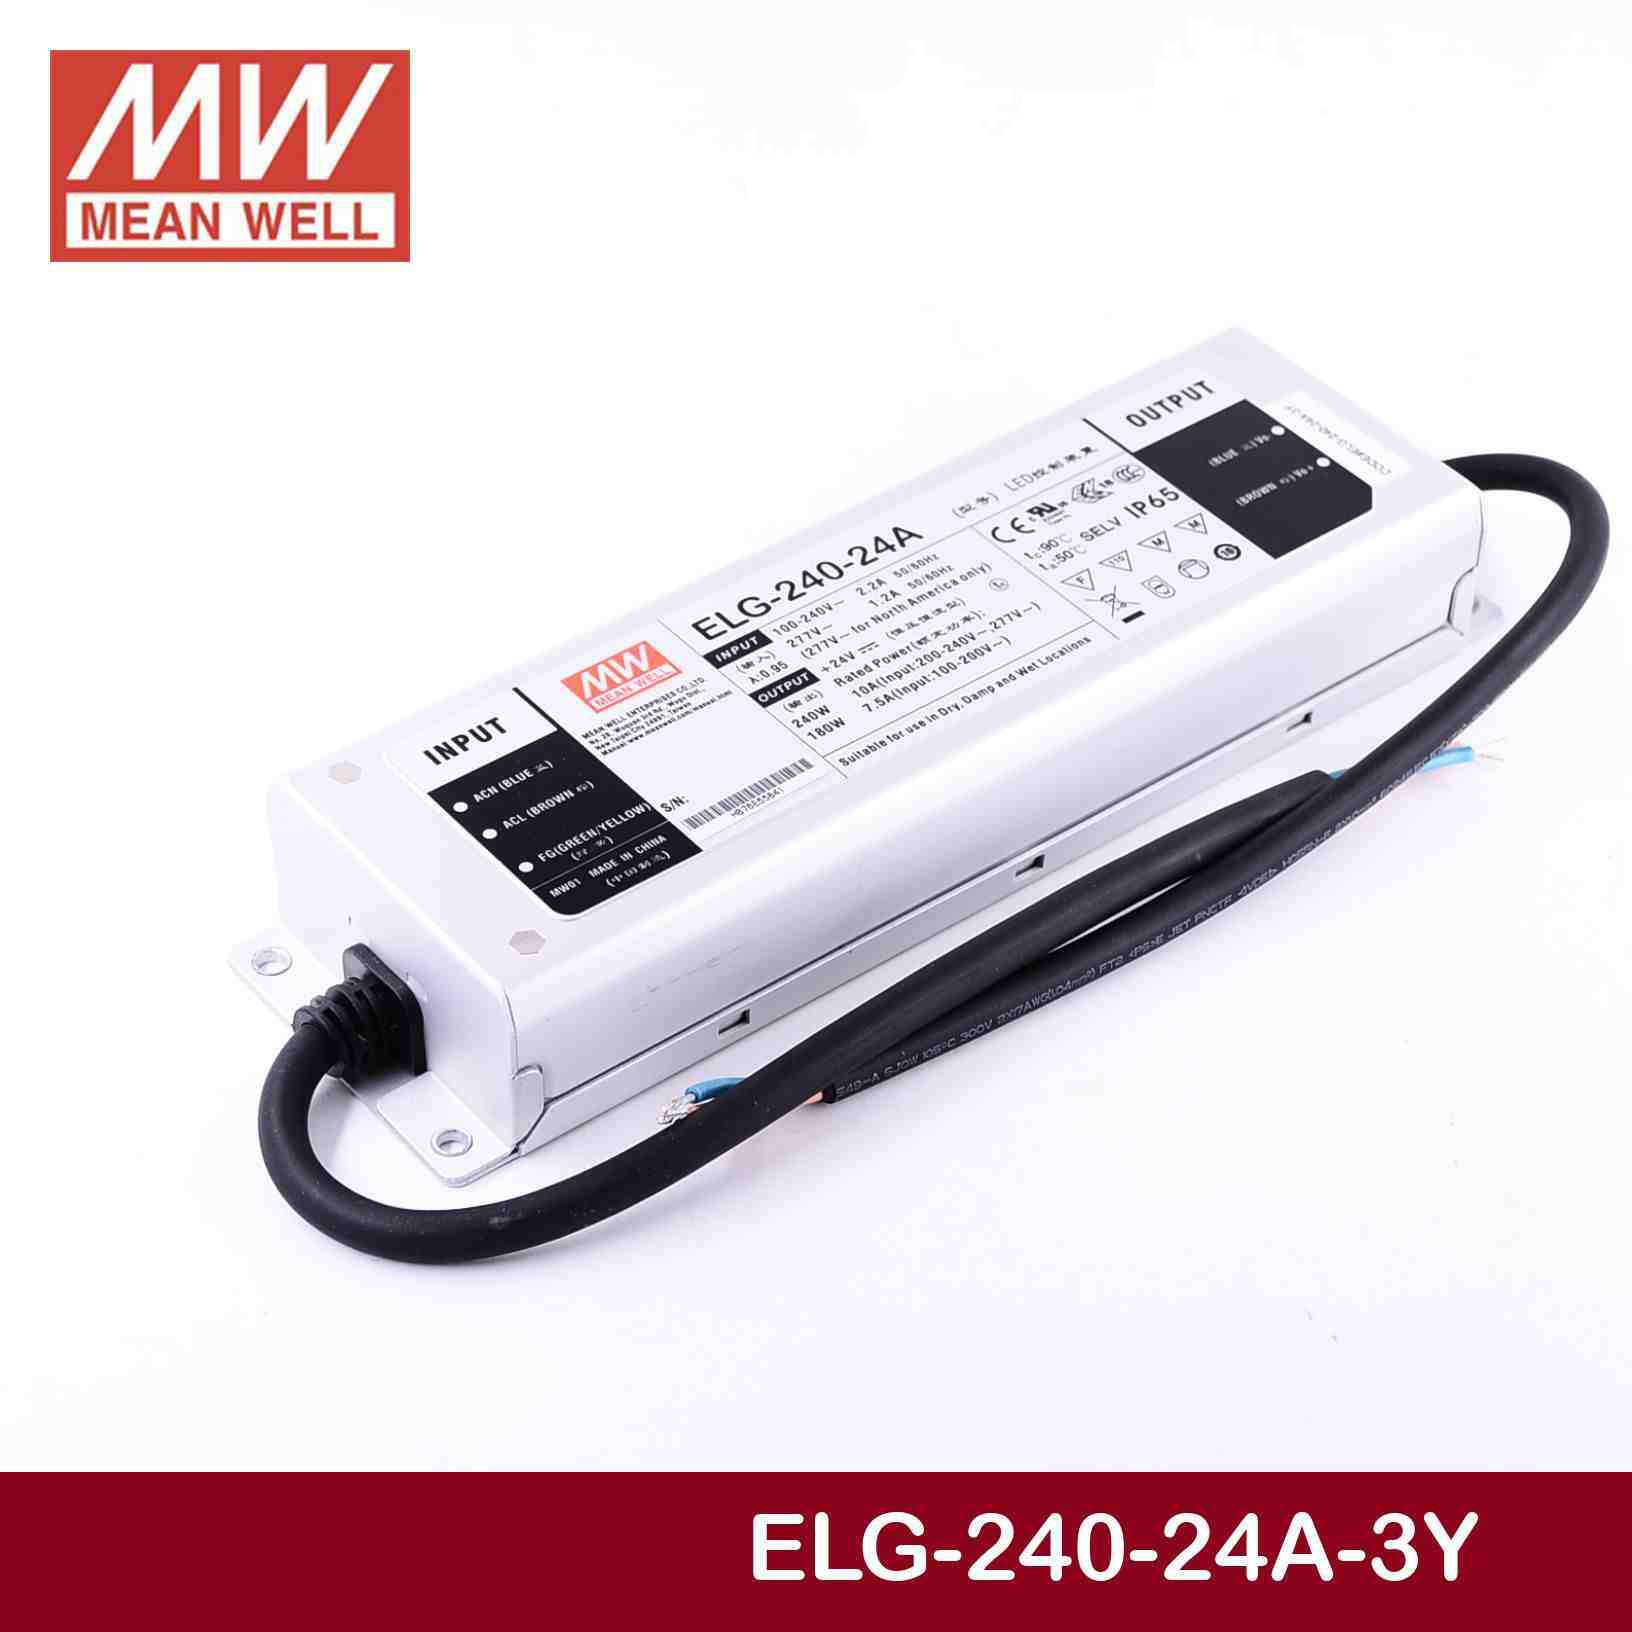 (Only 11.11)ELG-240-54B (2Pcs)  Taiwan Meanwell 240W54V waterproof power LED street lighting adjustable current 4.44A(Only 11.11)ELG-240-54B (2Pcs)  Taiwan Meanwell 240W54V waterproof power LED street lighting adjustable current 4.44A